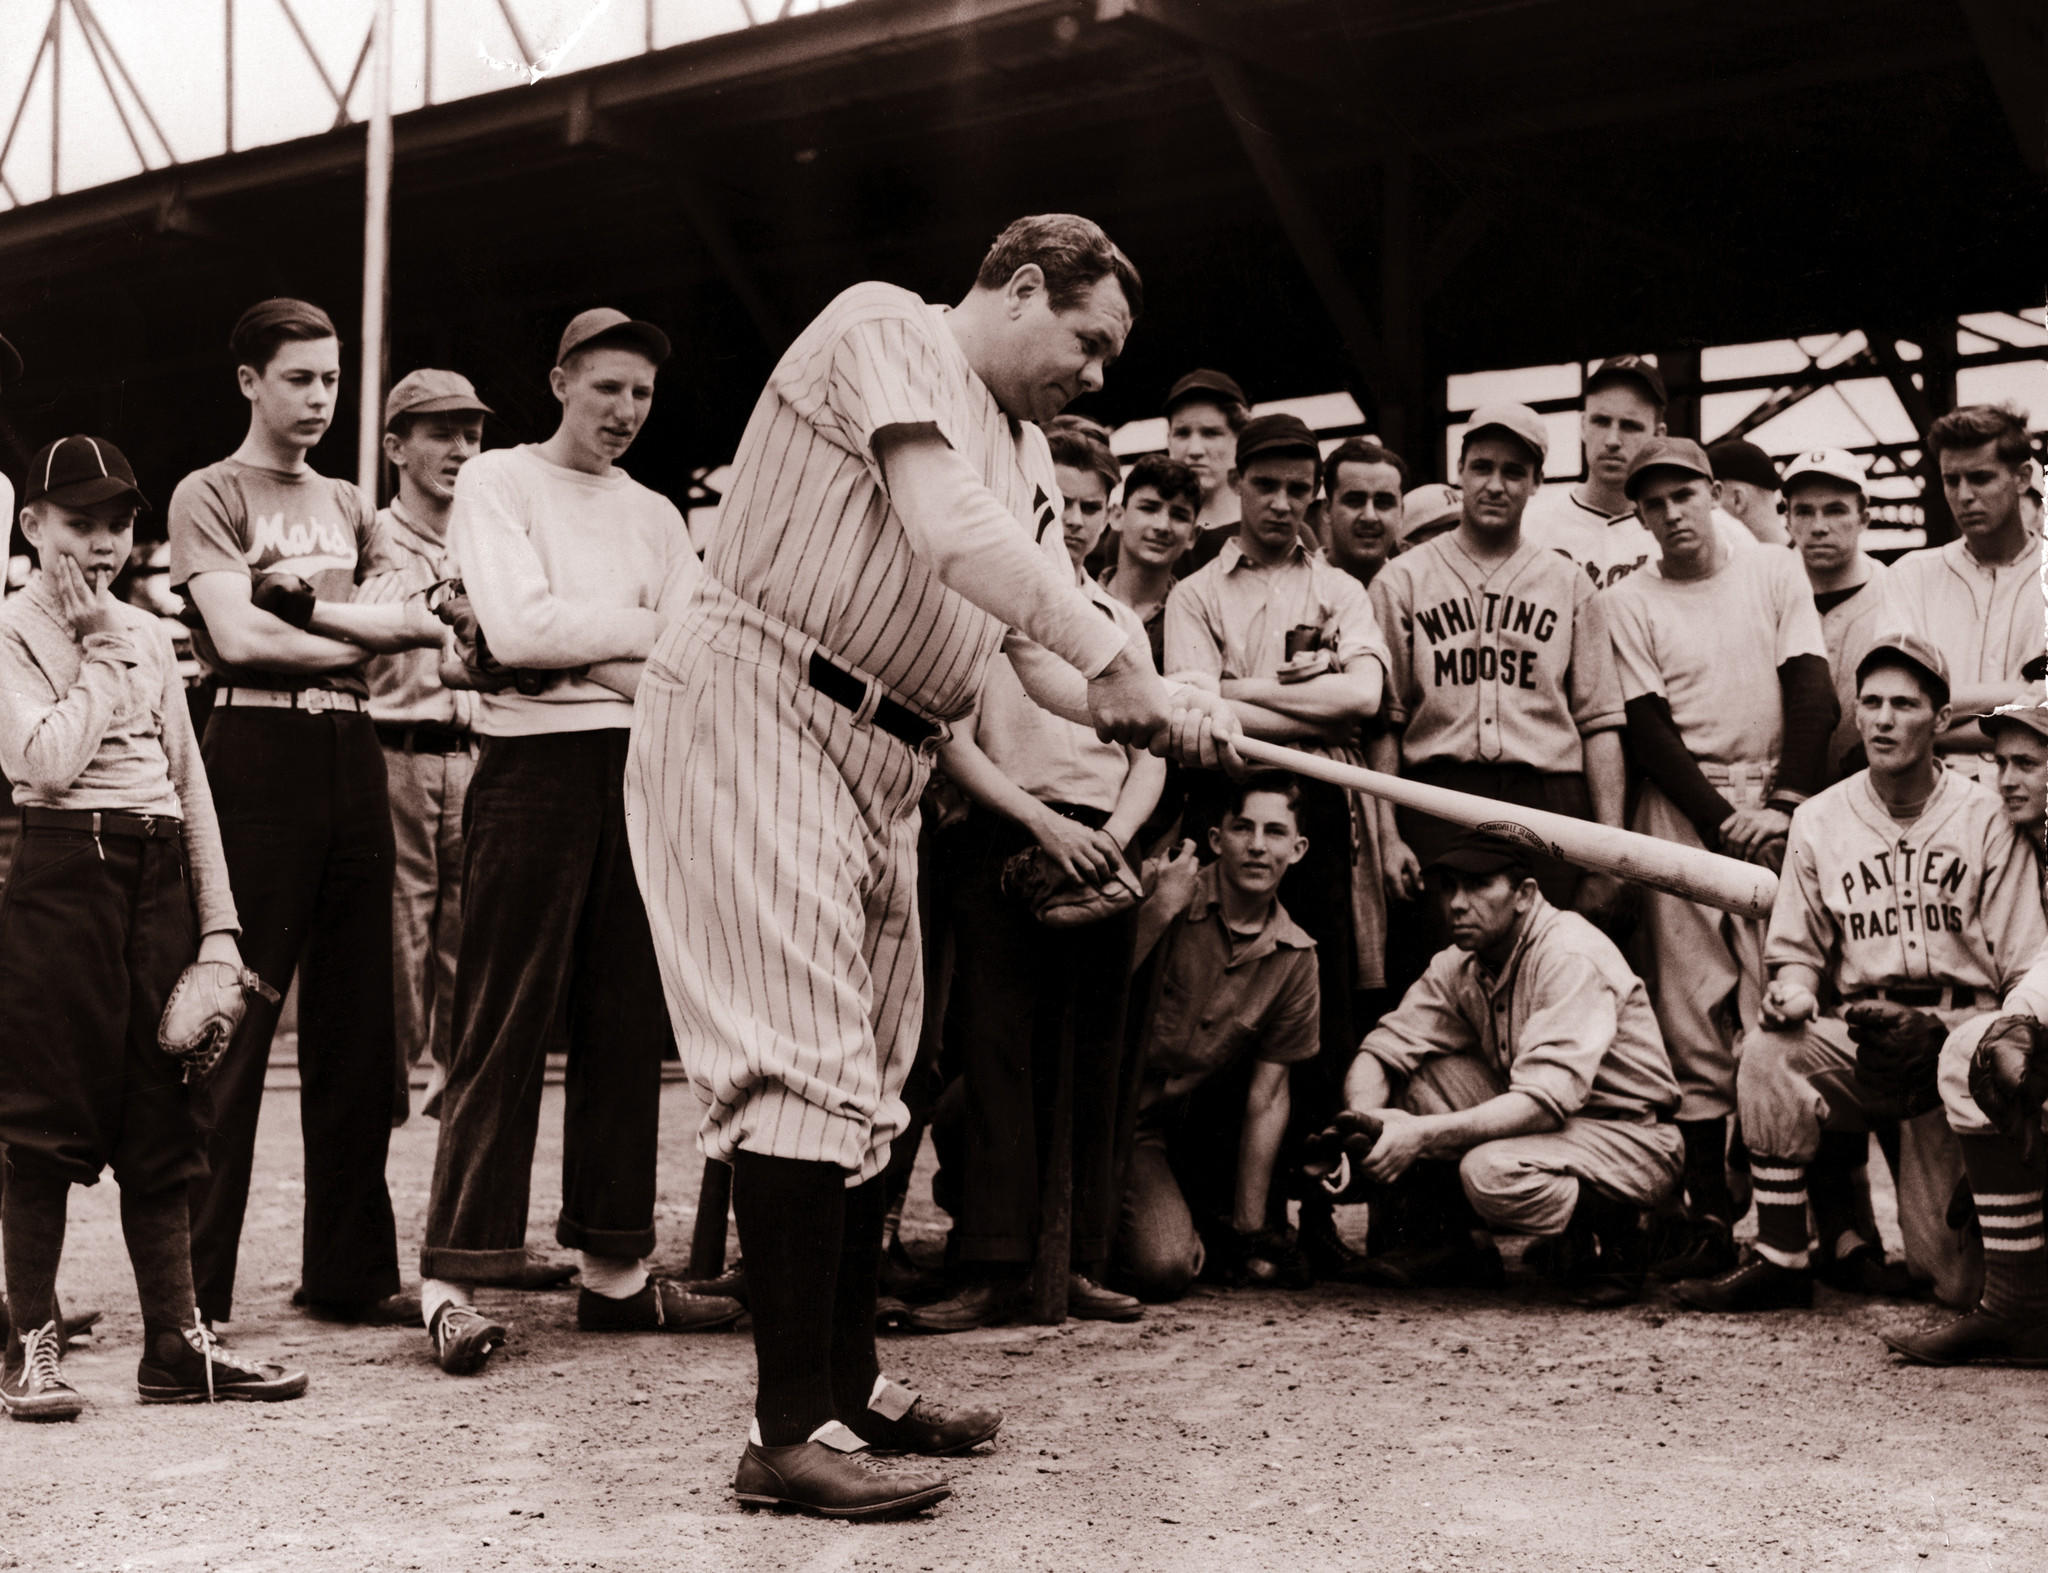 Babe Ruth visted Mills Stadium in Chicago to give youngsters lessons on hitting in June 1940.